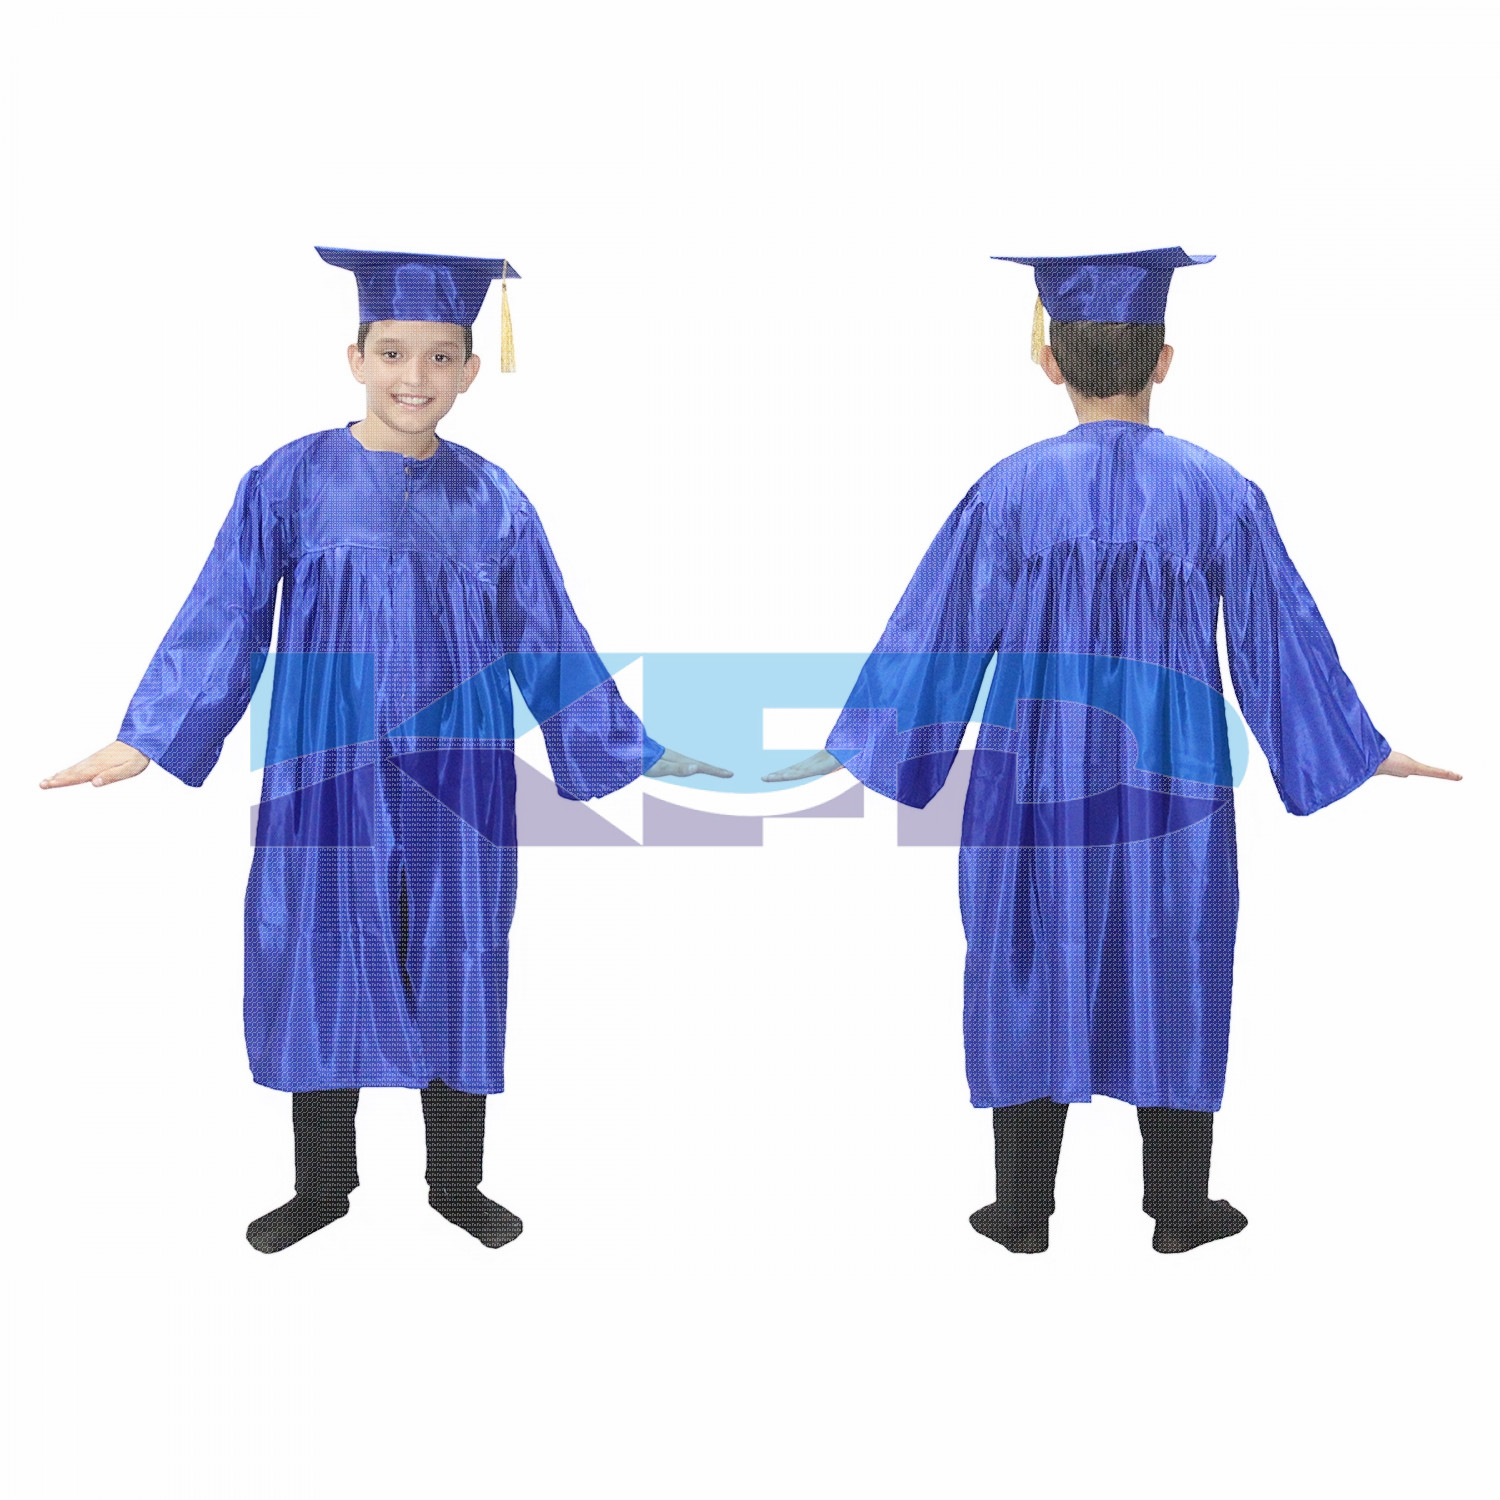 Graduation Gown Blue/Degree Gown Fancy Dress For Kids,Costume For Convocation/Annual Function/Theme Party/Competition/Stage Shows Dress